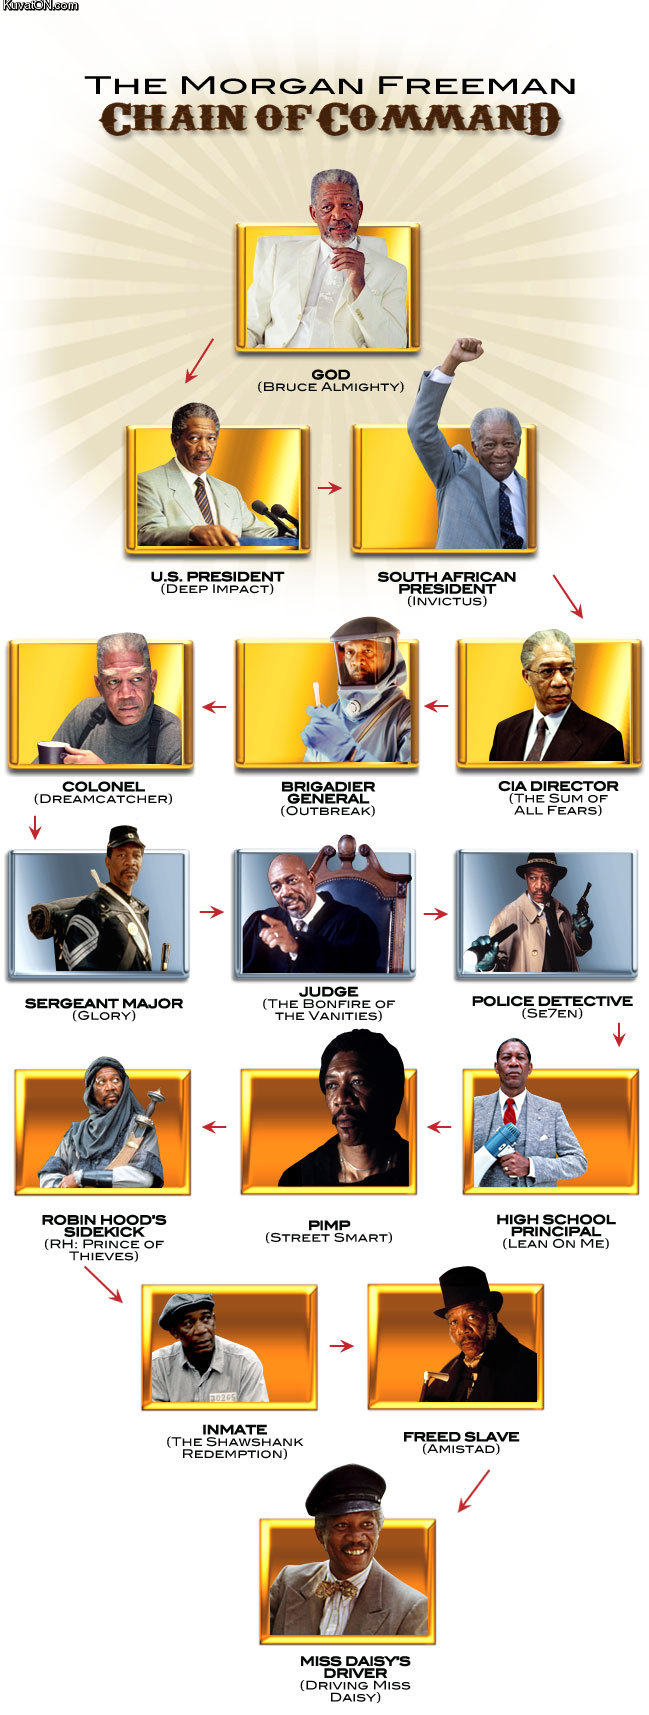 """The Morgan Freeman chain of command. I think you know what I want. THE FREEMAN in EEP IMPACT} FREEAGENT LLB. PRESIDENT BRIGADIER AMA D[ REI:' 